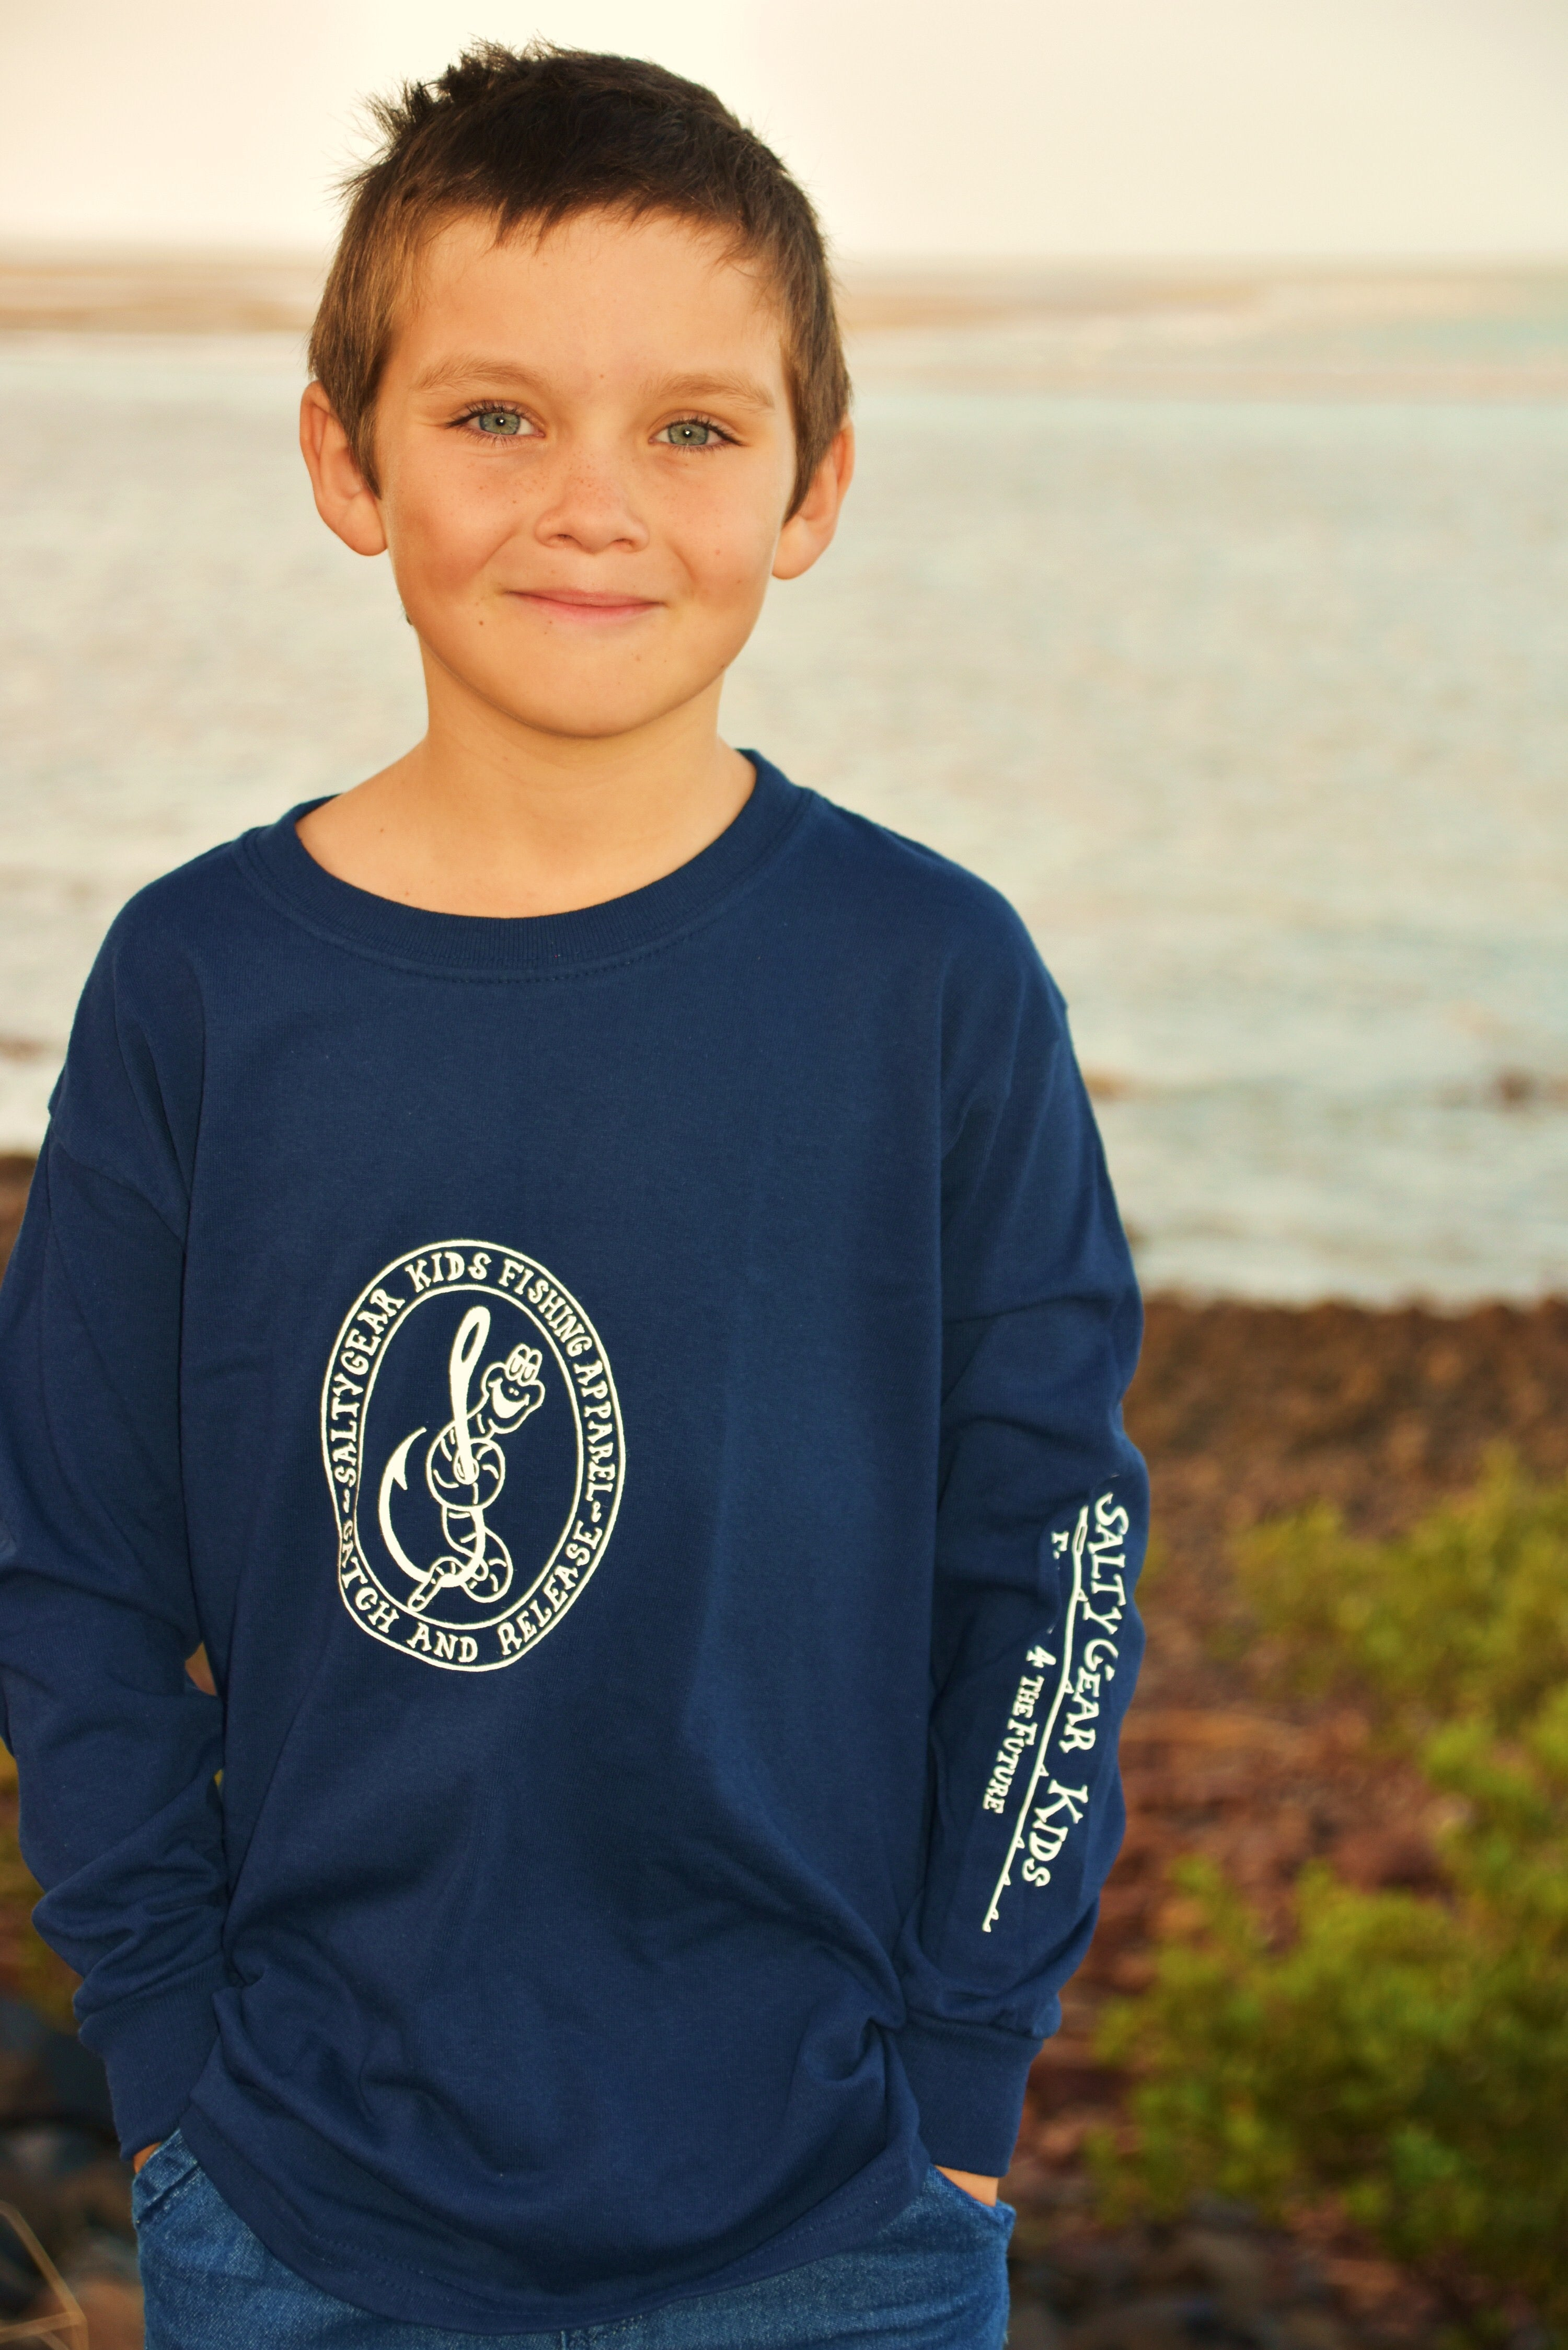 WORM ON HOOK Long Sleeve Cotton Tee YOUTH